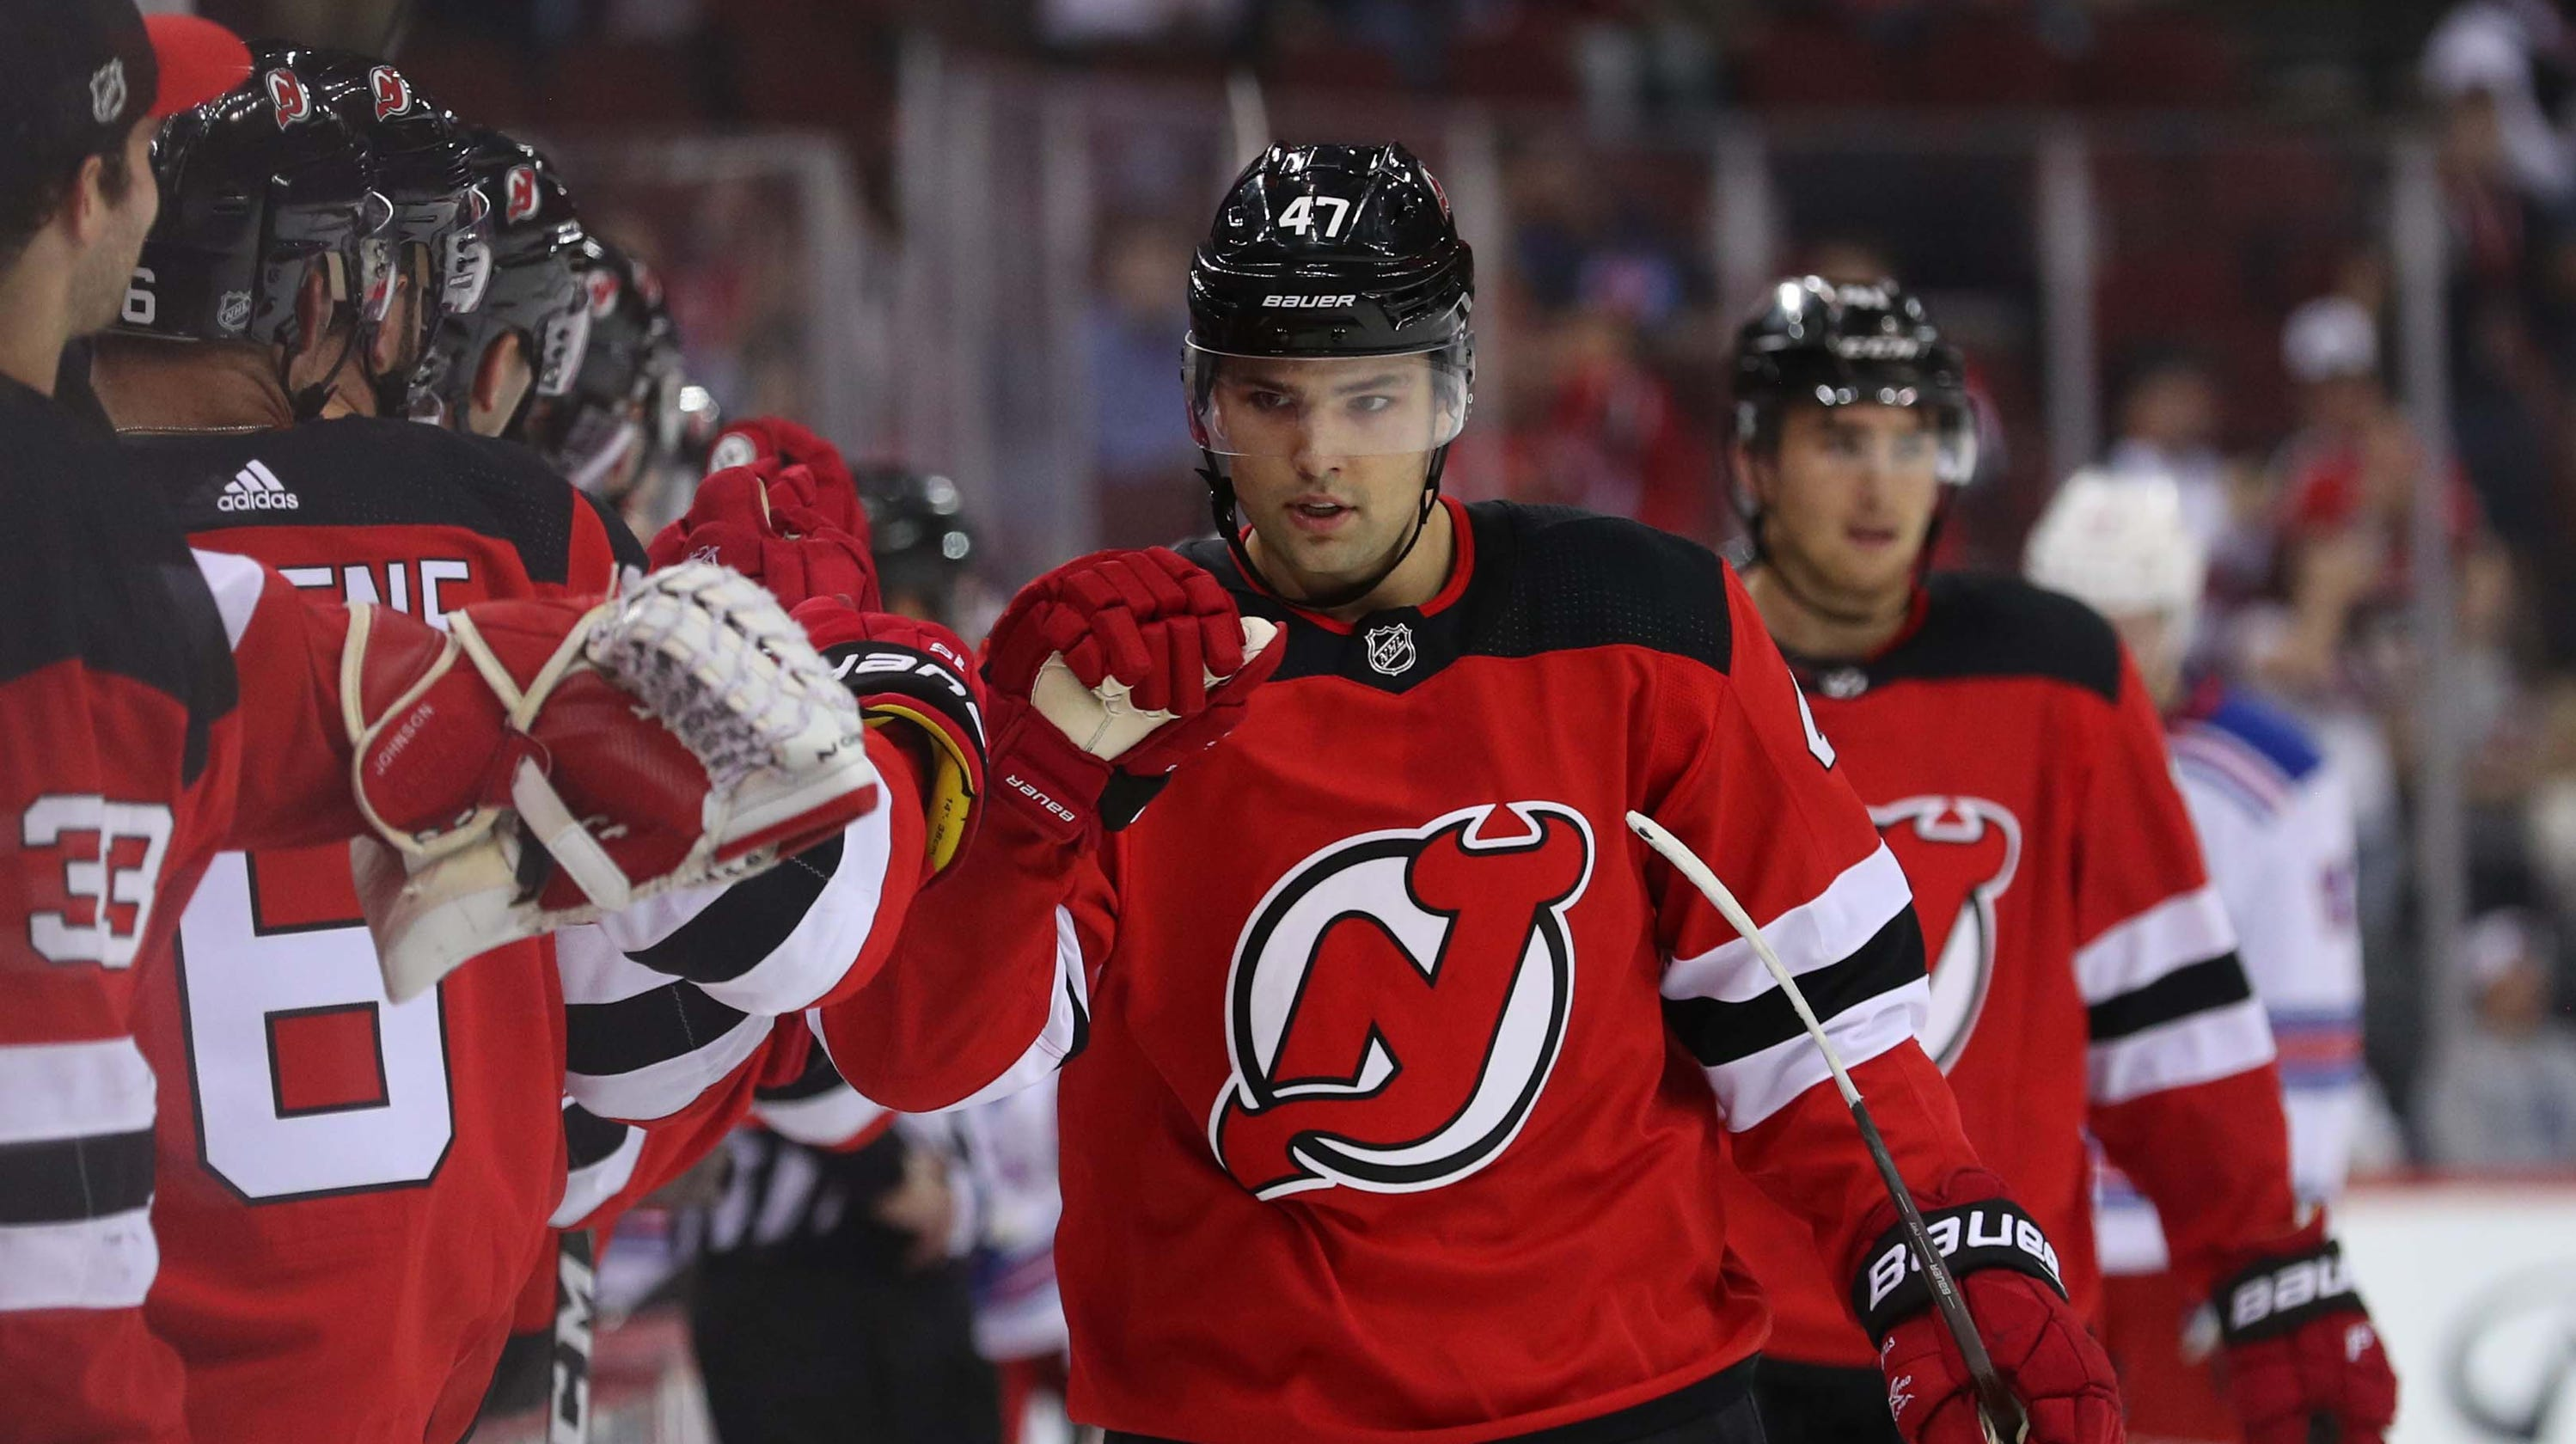 Next man up  Binghamton Devils call-ups get their time to shine for NJ  Devils e739a6bf5